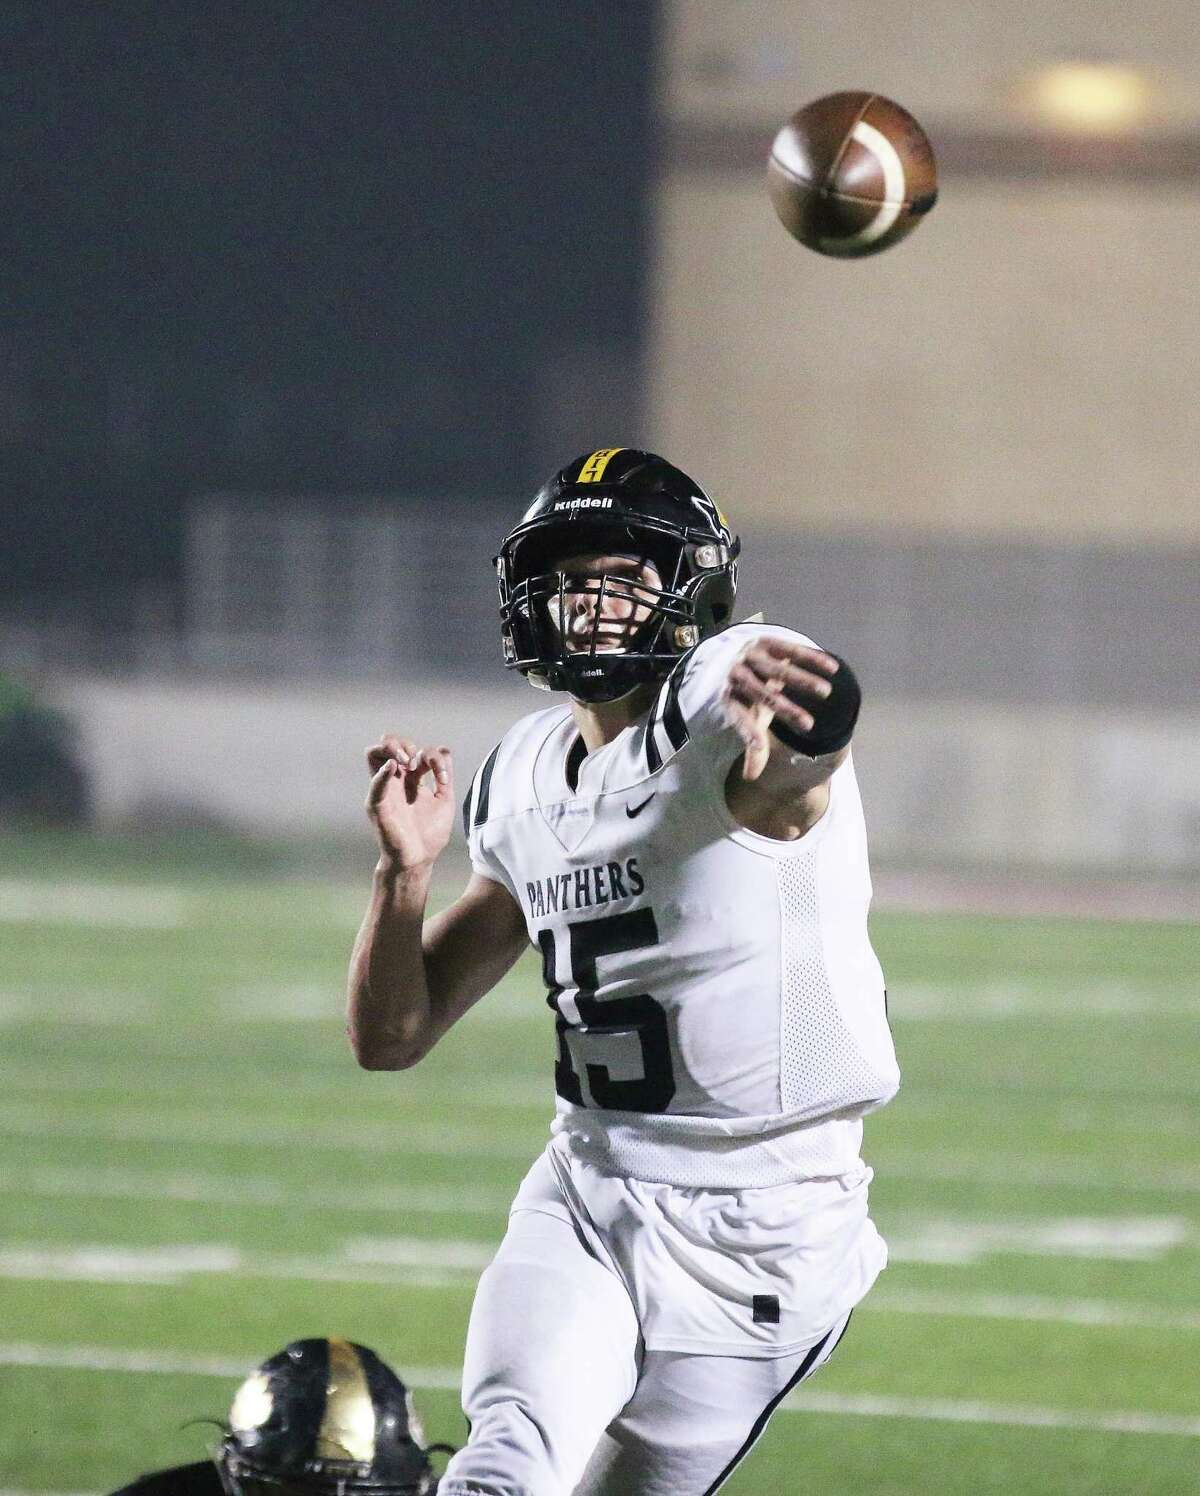 J. J. Slack delivers a bullet pass to Jeremiah Guillory for a Panther touchdown in their playoff game against Giddings Friday night at Texan Drive Stadium in Porter.